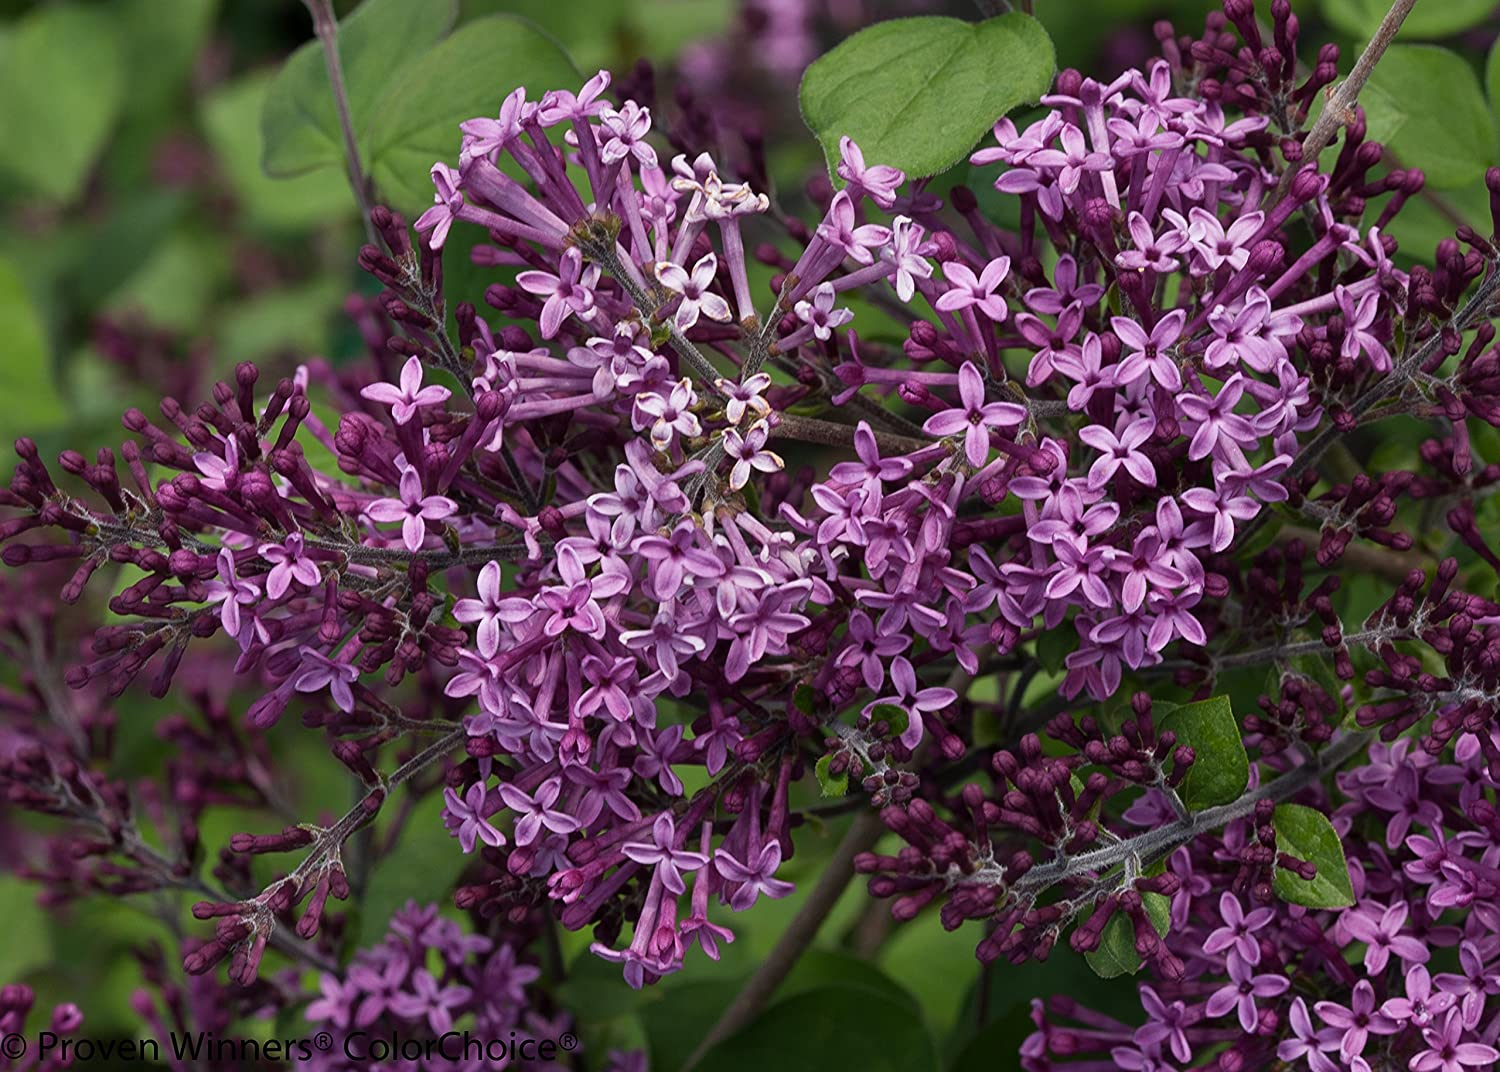 Shrubs with purple flowers pictures - Amazon Com Bloomerang Dark Purple Reblooming Lilac Syringa Live Shrub Purple Flowers 1 Gallon Garden Outdoor